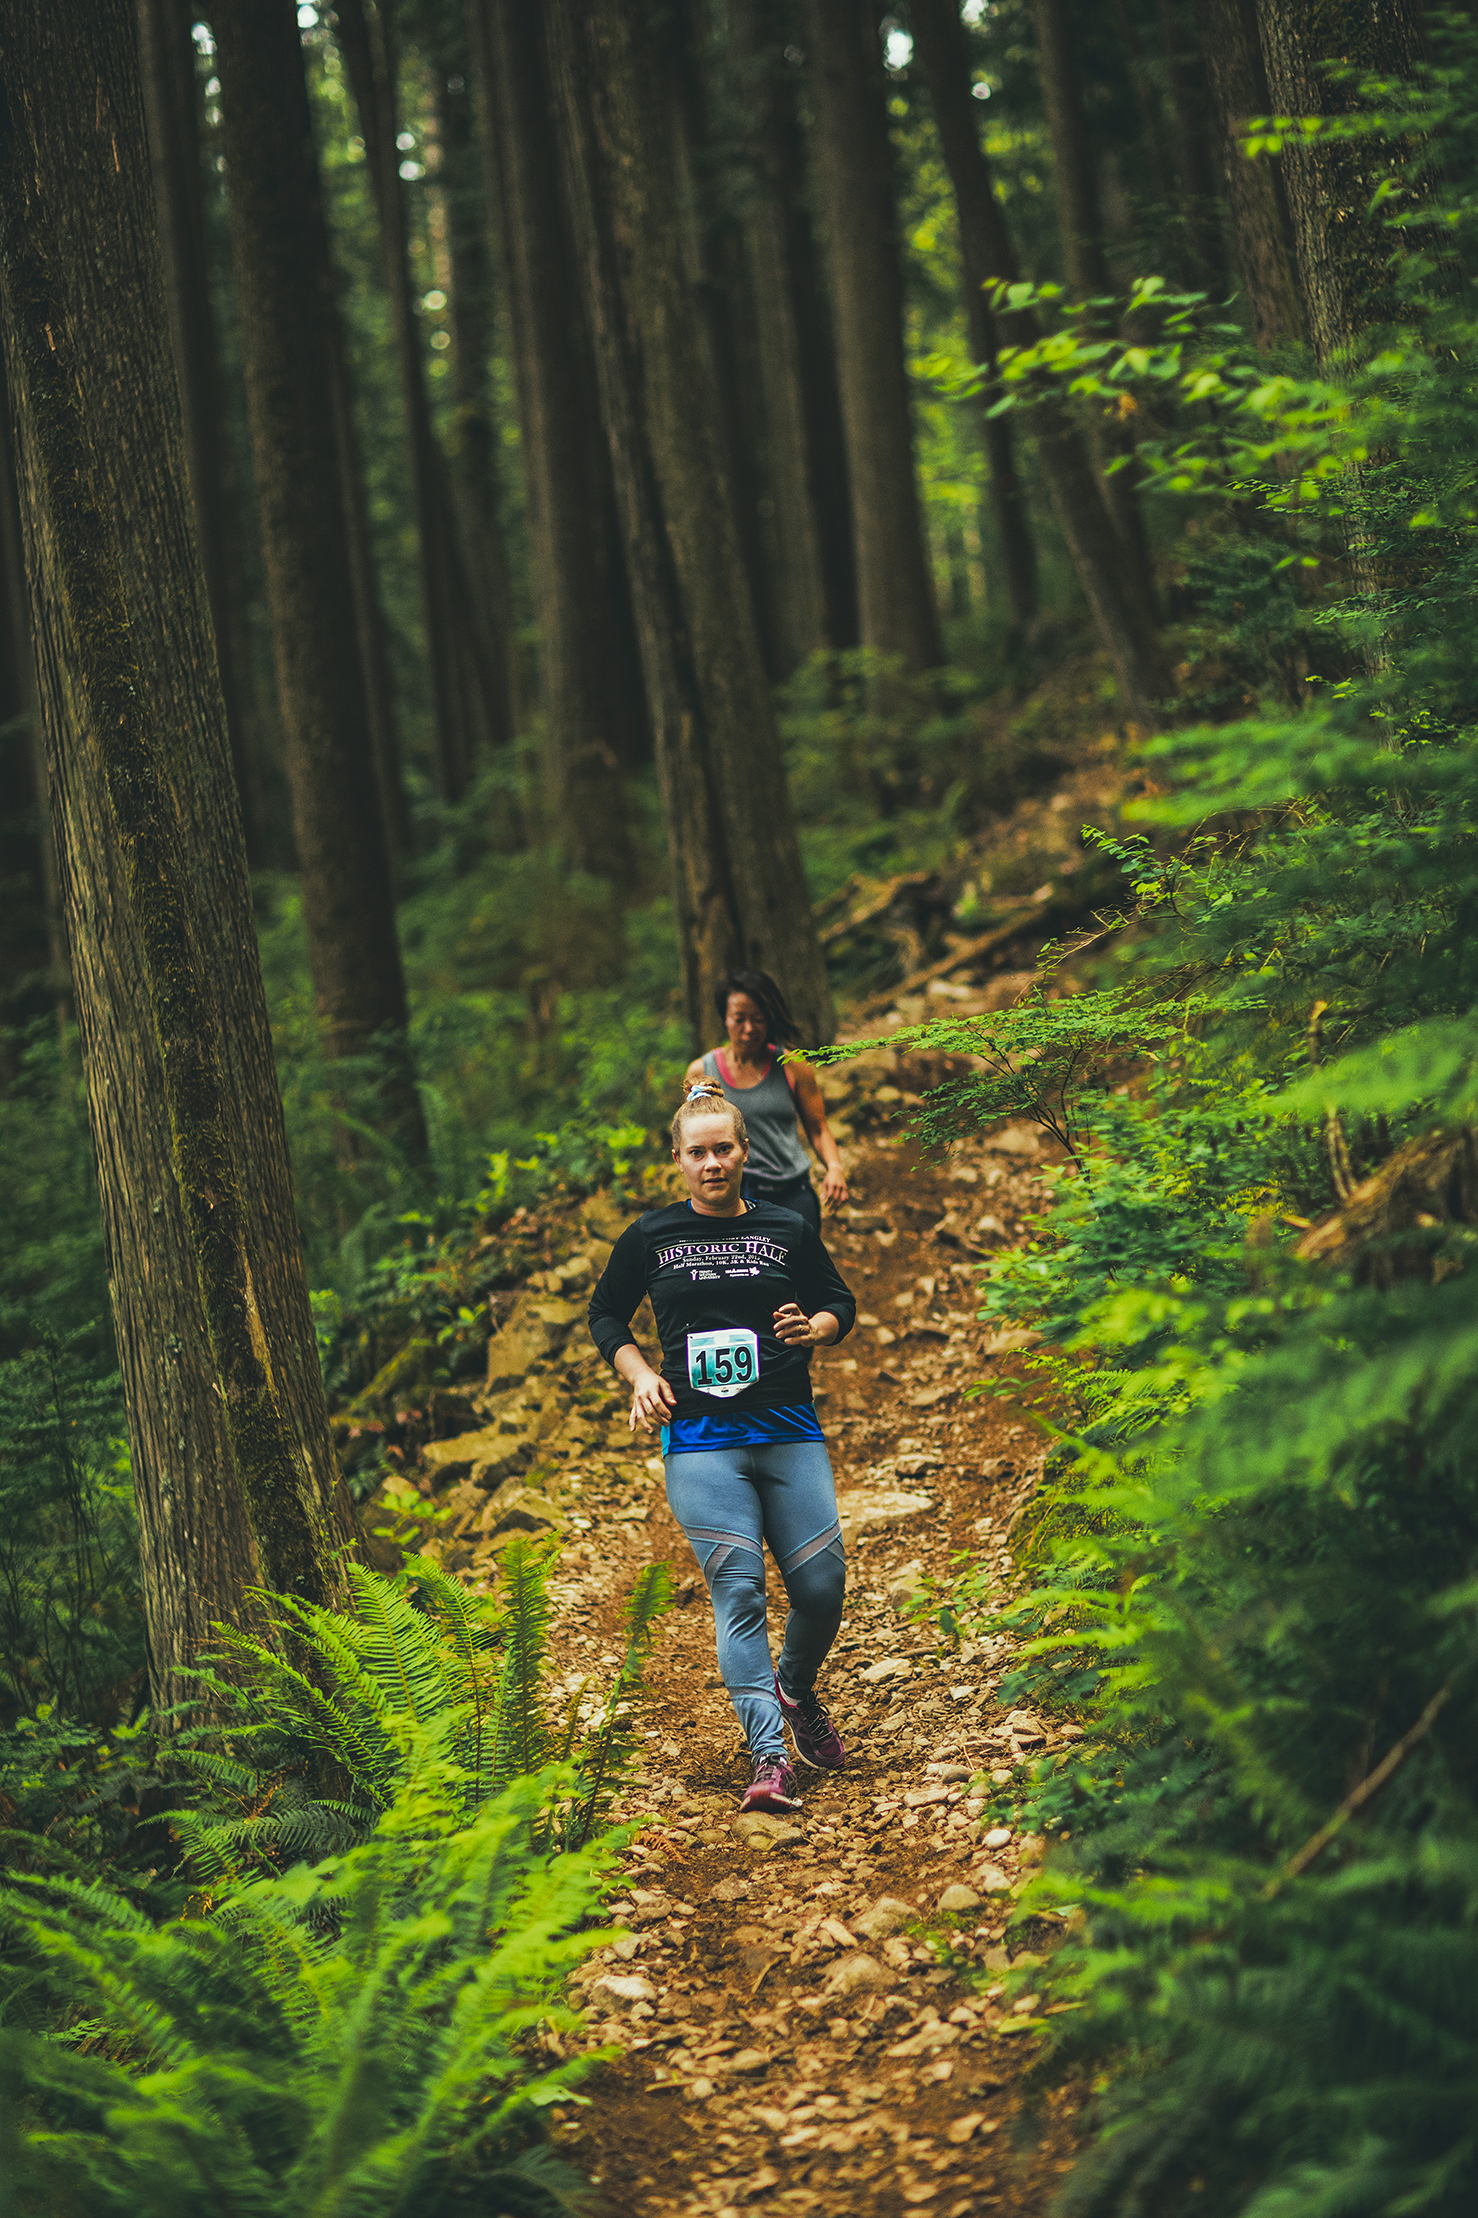 Fraser Valley Trail Races - Bear Mountain - IMG_2065 by Brice Ferre Studio - Vancouver Portrait Adventure and Athlete Photographer.jpg